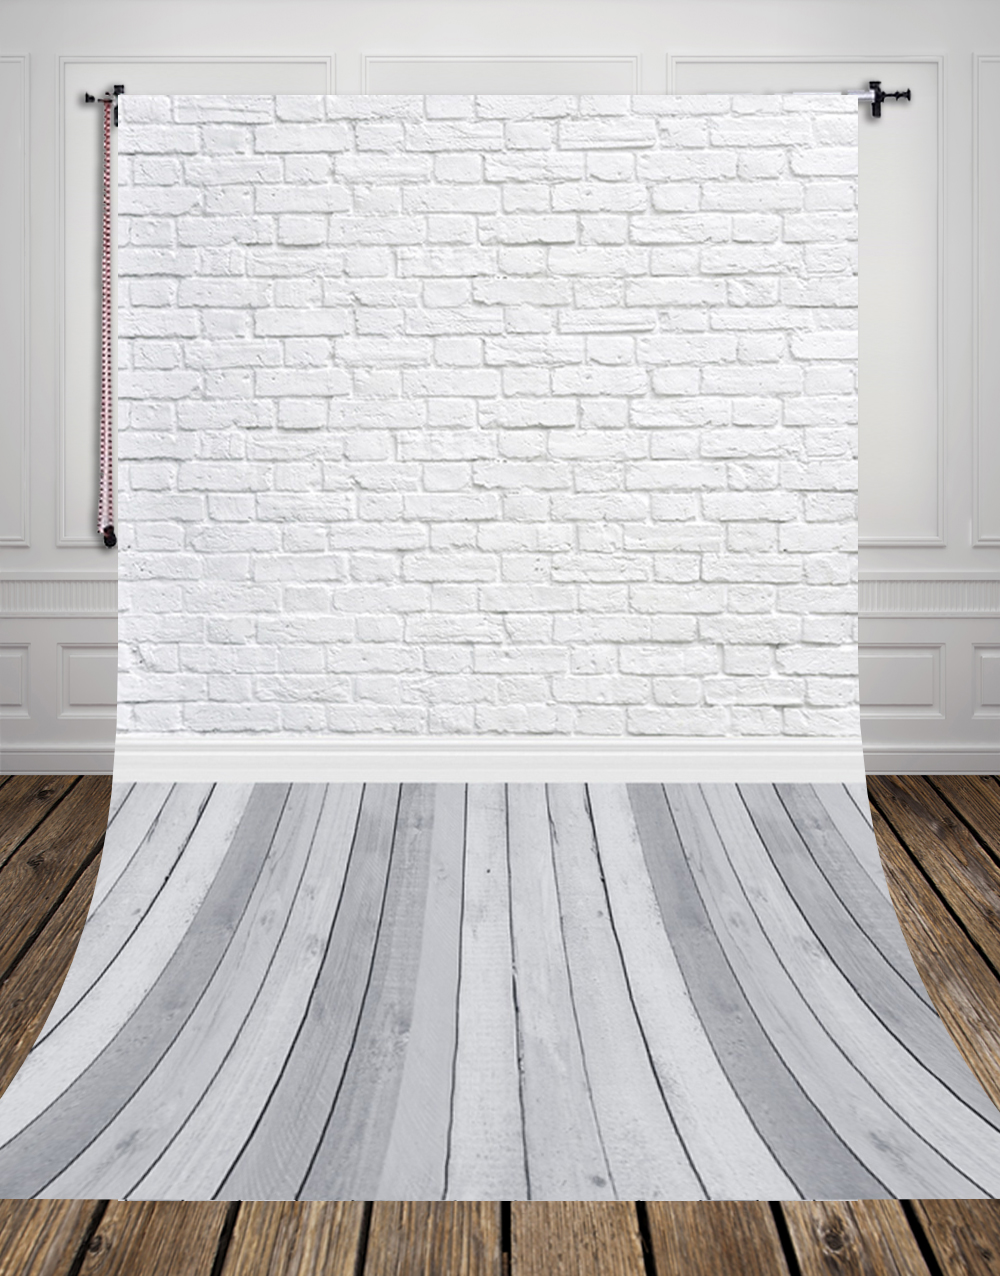 Grey Wood Floor Studio Photo Background Vinyl White Bricks Photography Backdrop for Pets Cakes Photos D-9713